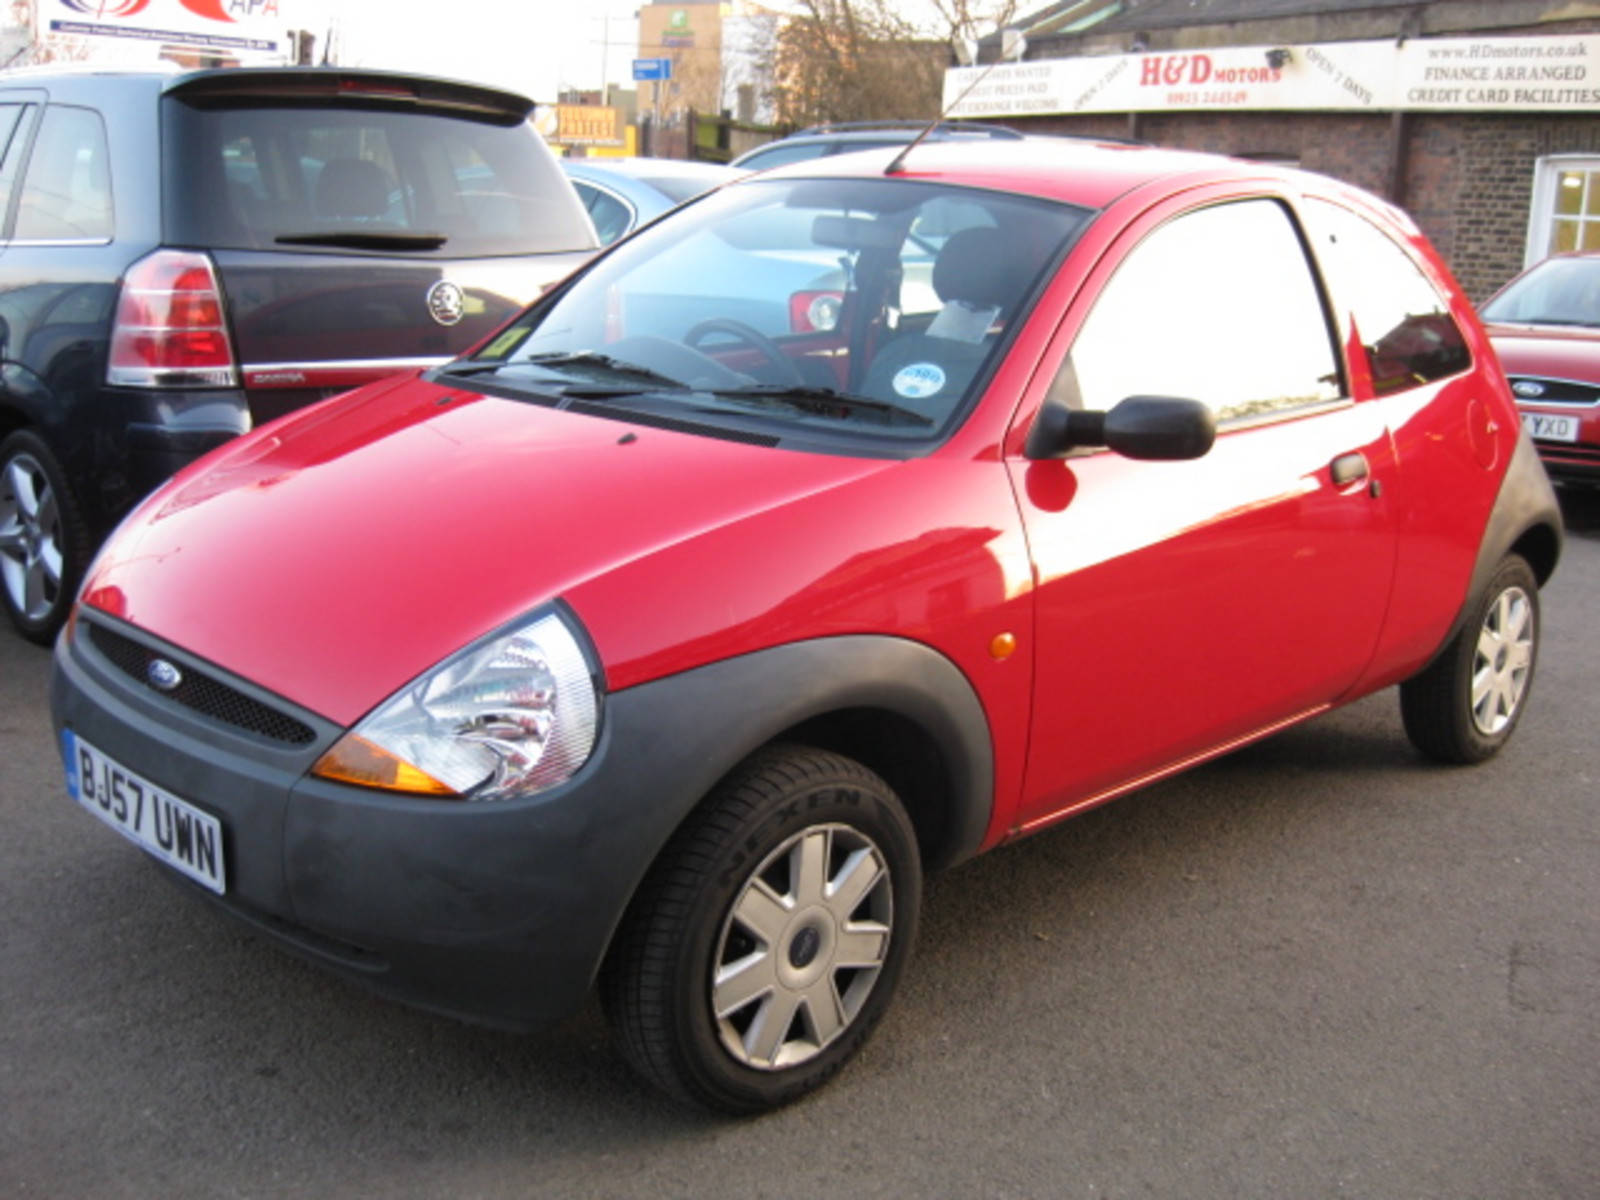 Ford Ka 1.3 Studio Hatchback Petrol Red at H &amp; D Motors Watford 